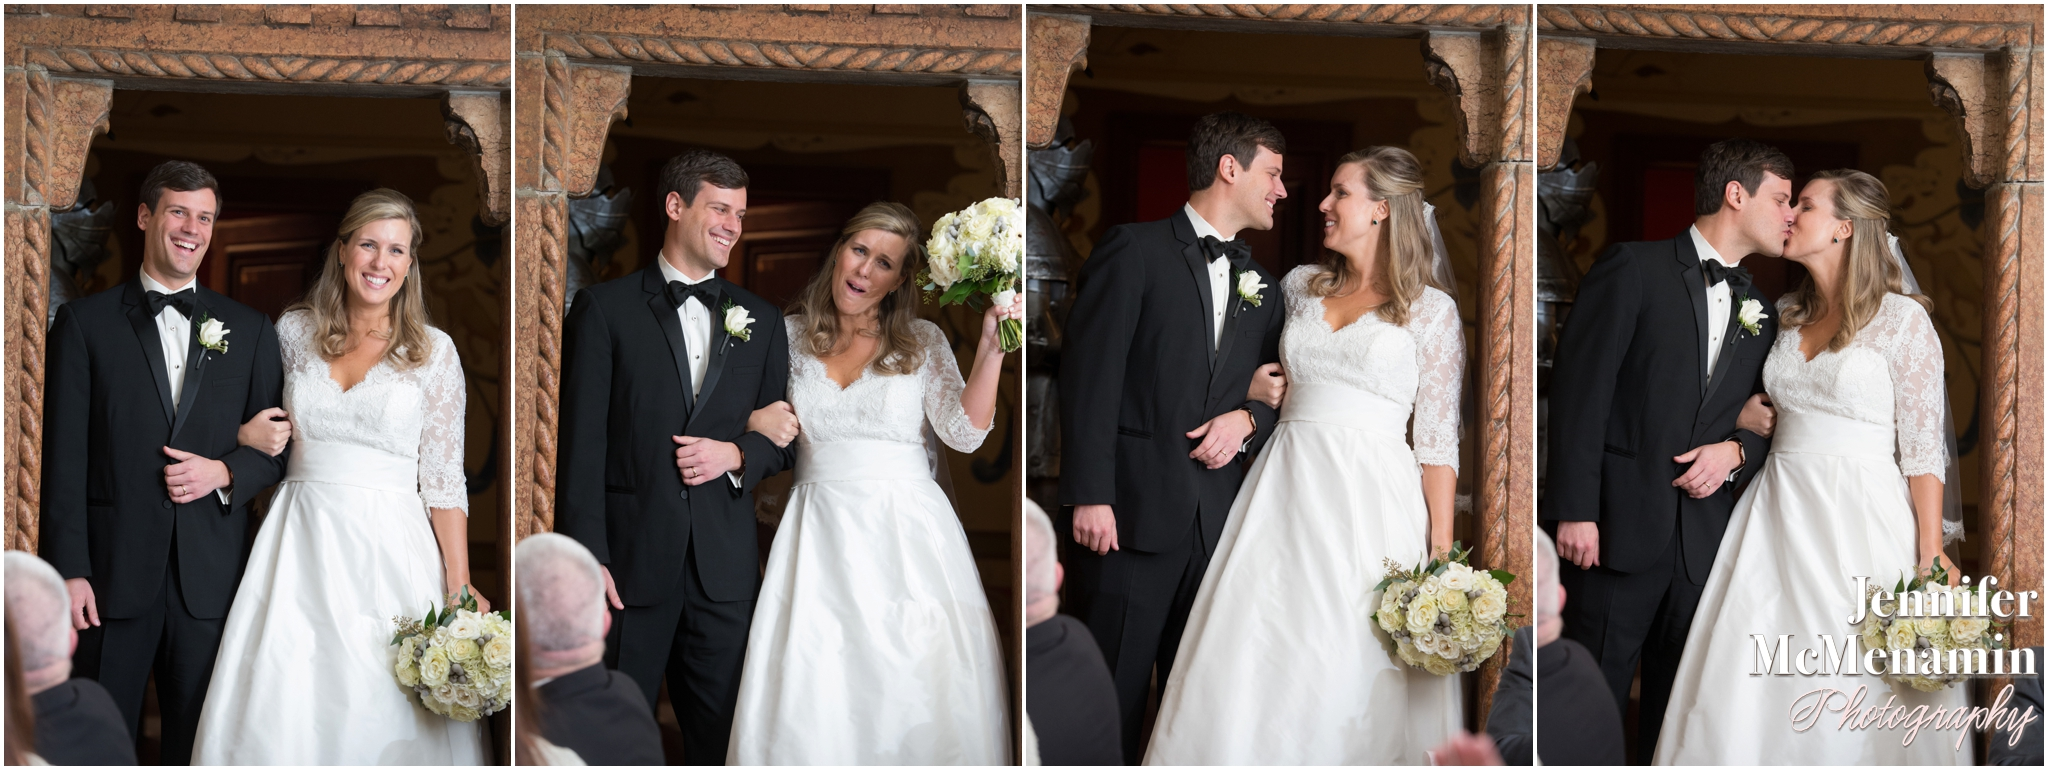 0088_RyanClemmens_02398-0649_JenniferMcMenaminPhotography_Immaculate-Conception-Church_The-Cloisters_Baltimore-wedding-photography_Baltimore-wedding-photographer